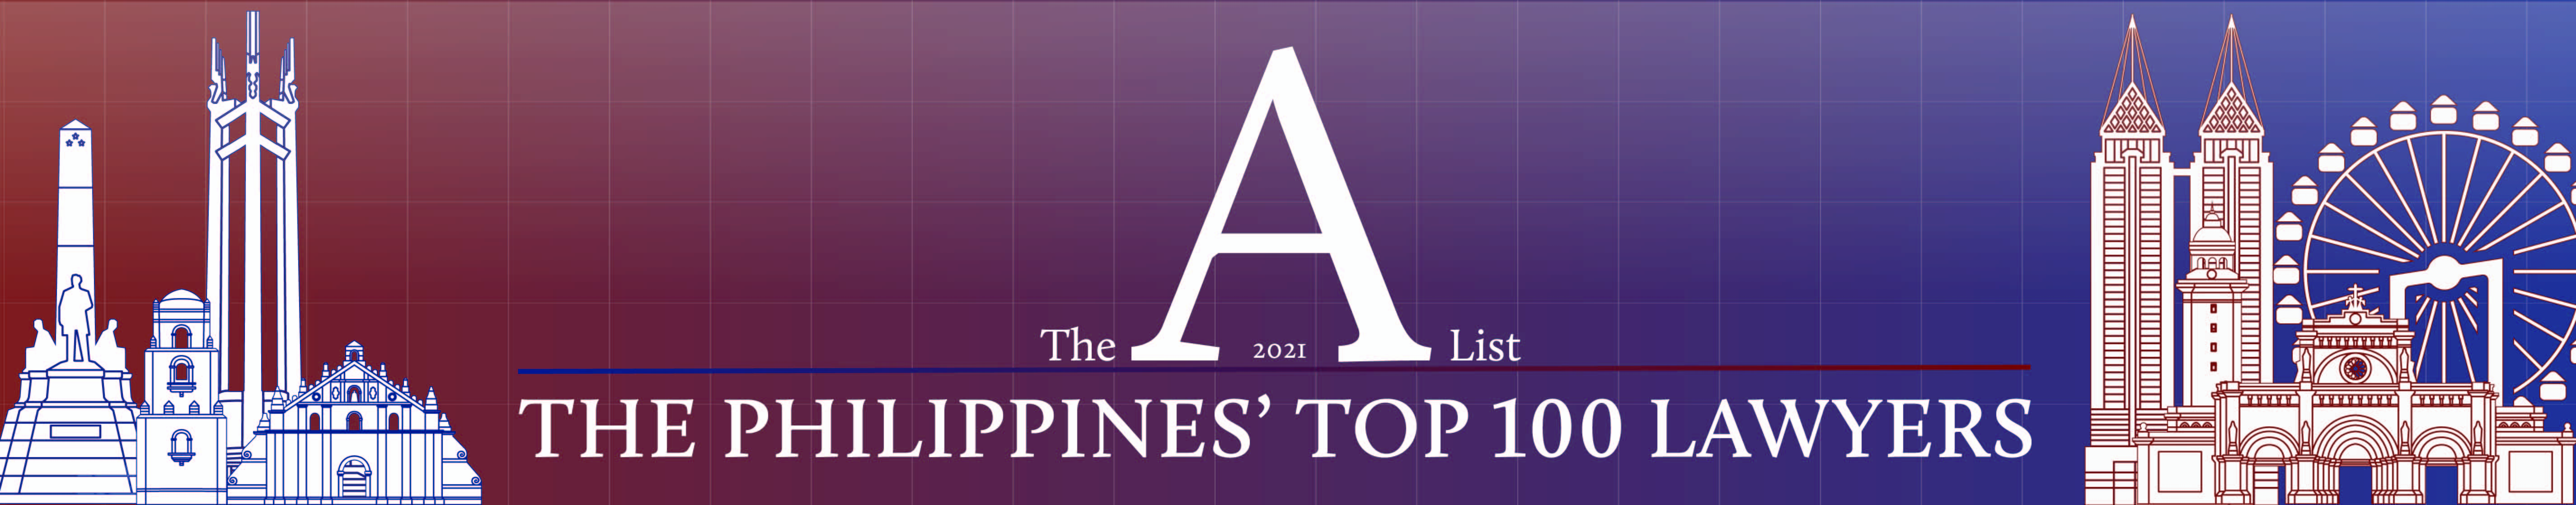 Philippines top lawyers